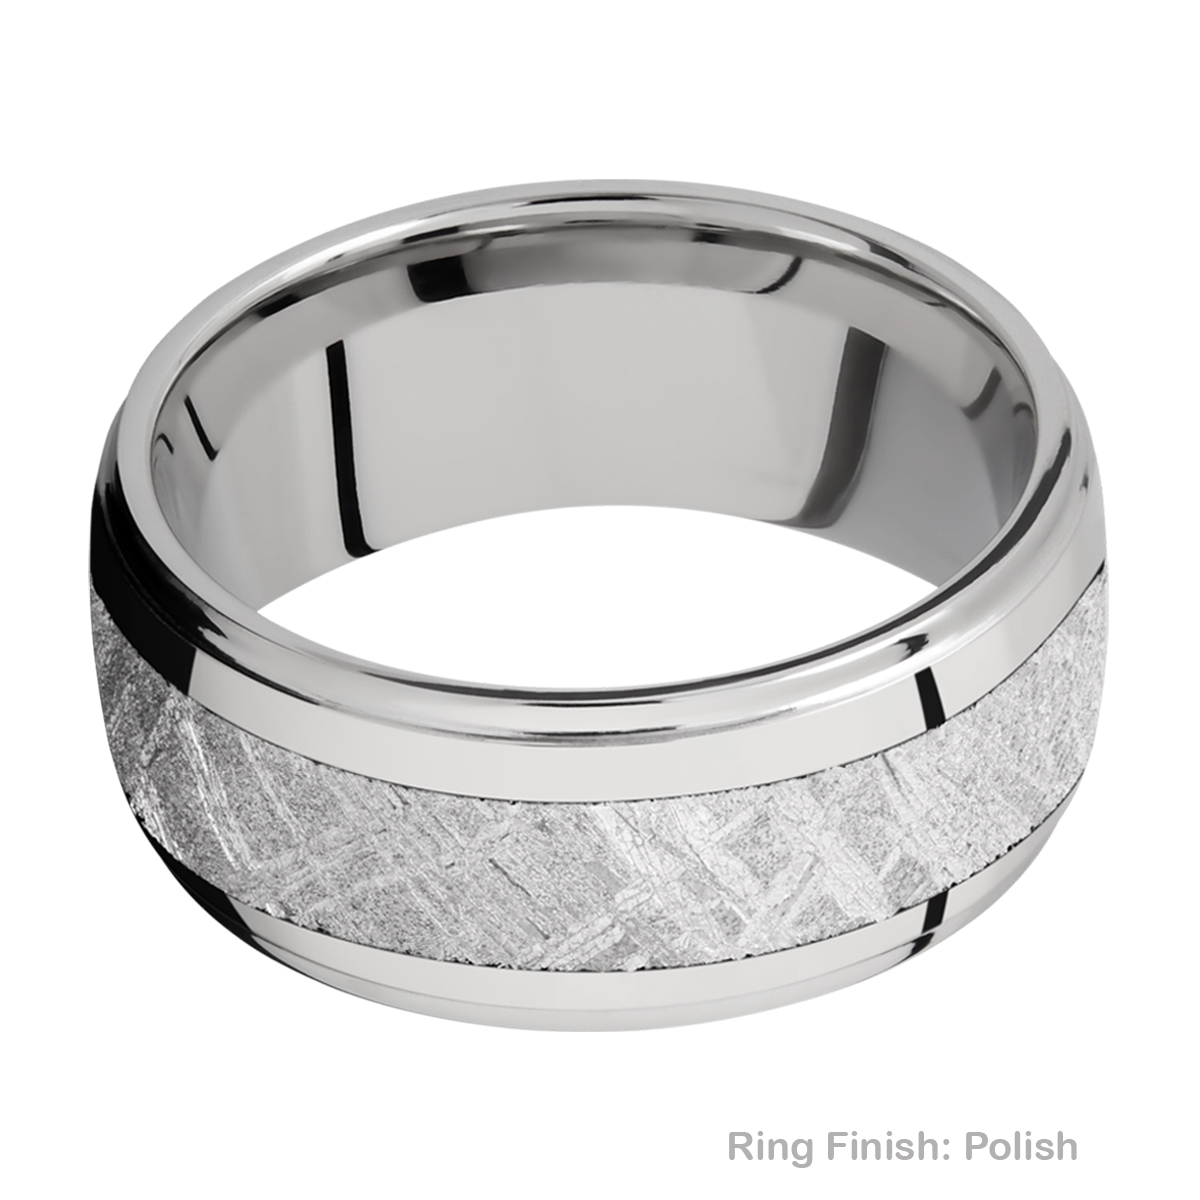 Lashbrook 10DGE15/METEORITE Titanium Wedding Ring or Band Alternative View 3